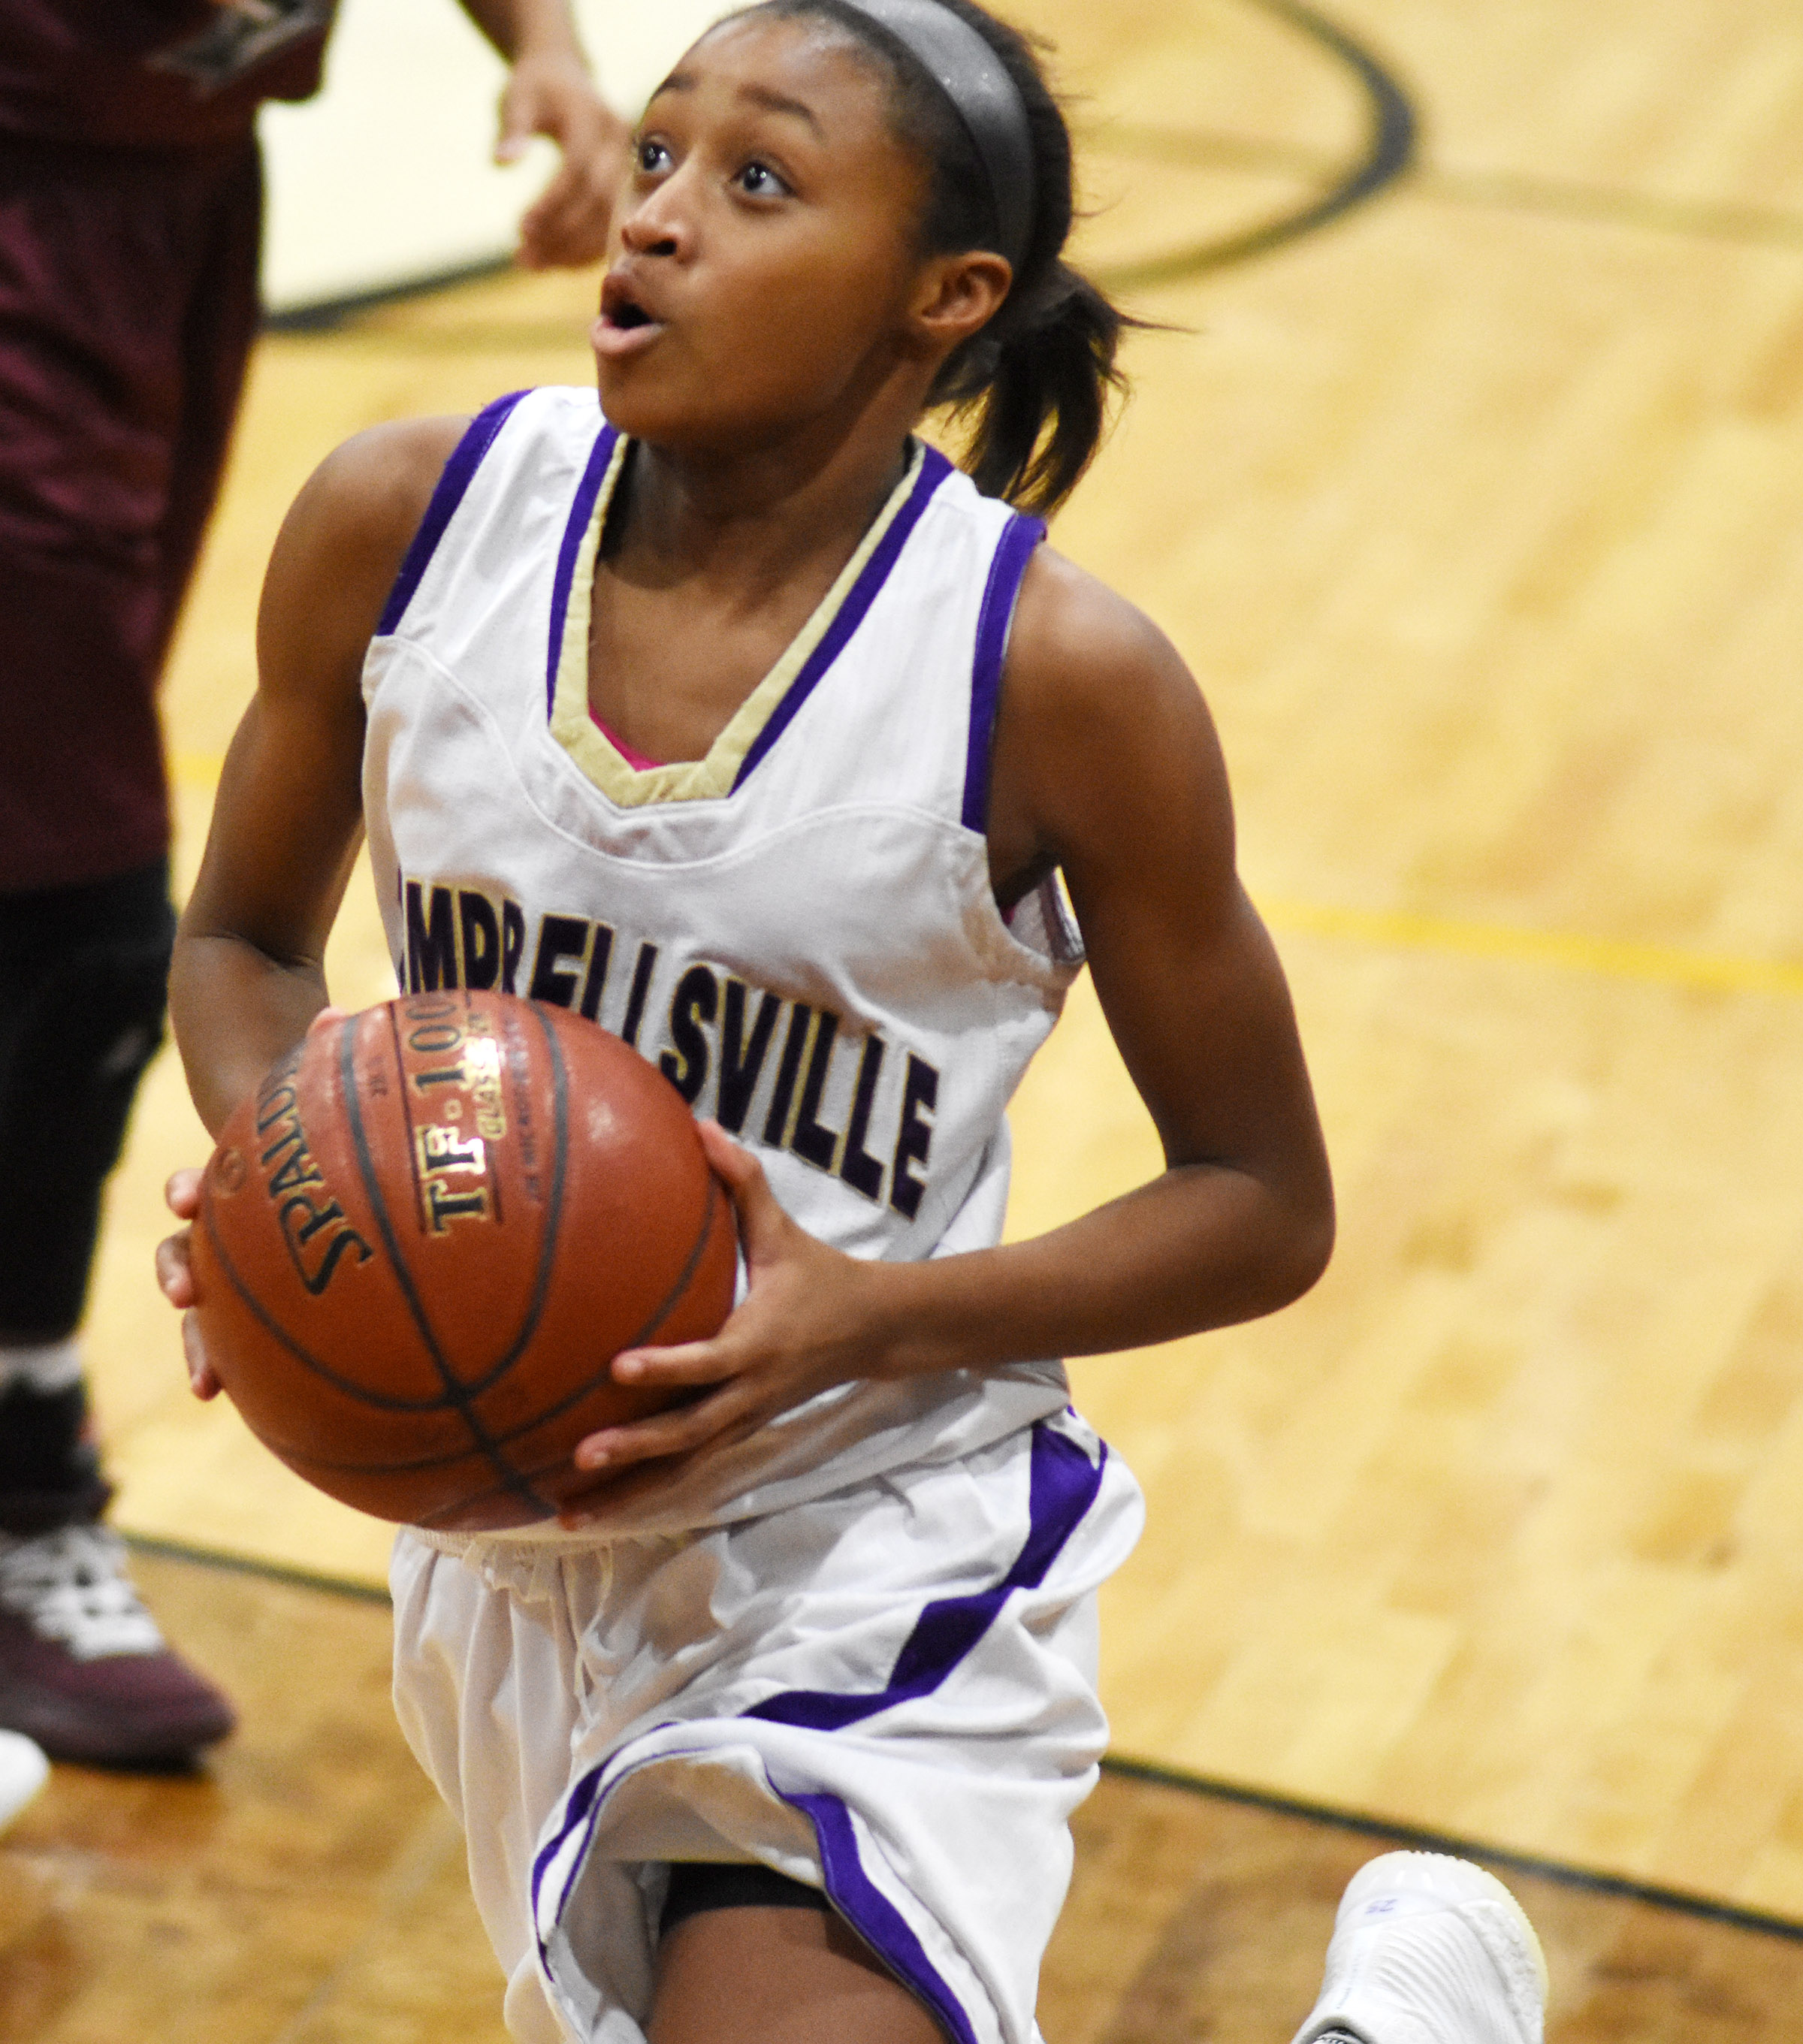 Campbellsville Middle School eighth-grader Bri Gowdy scores.